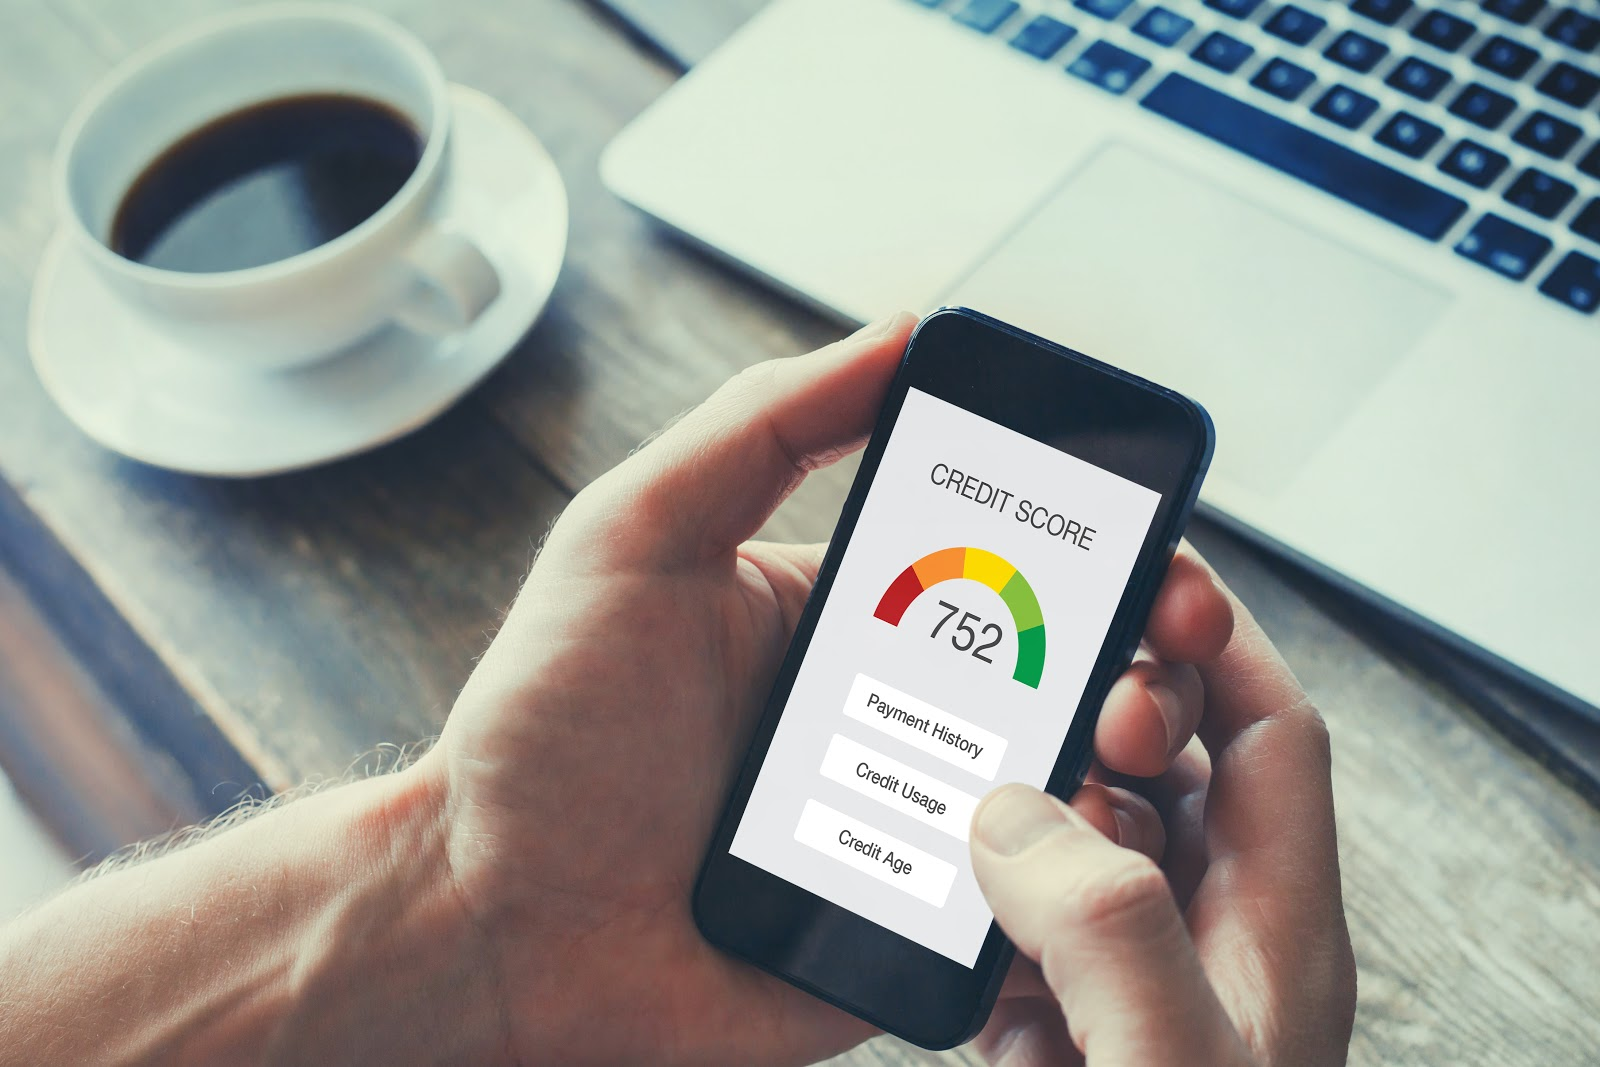 Two hands hold a smartphone and use a credit score app